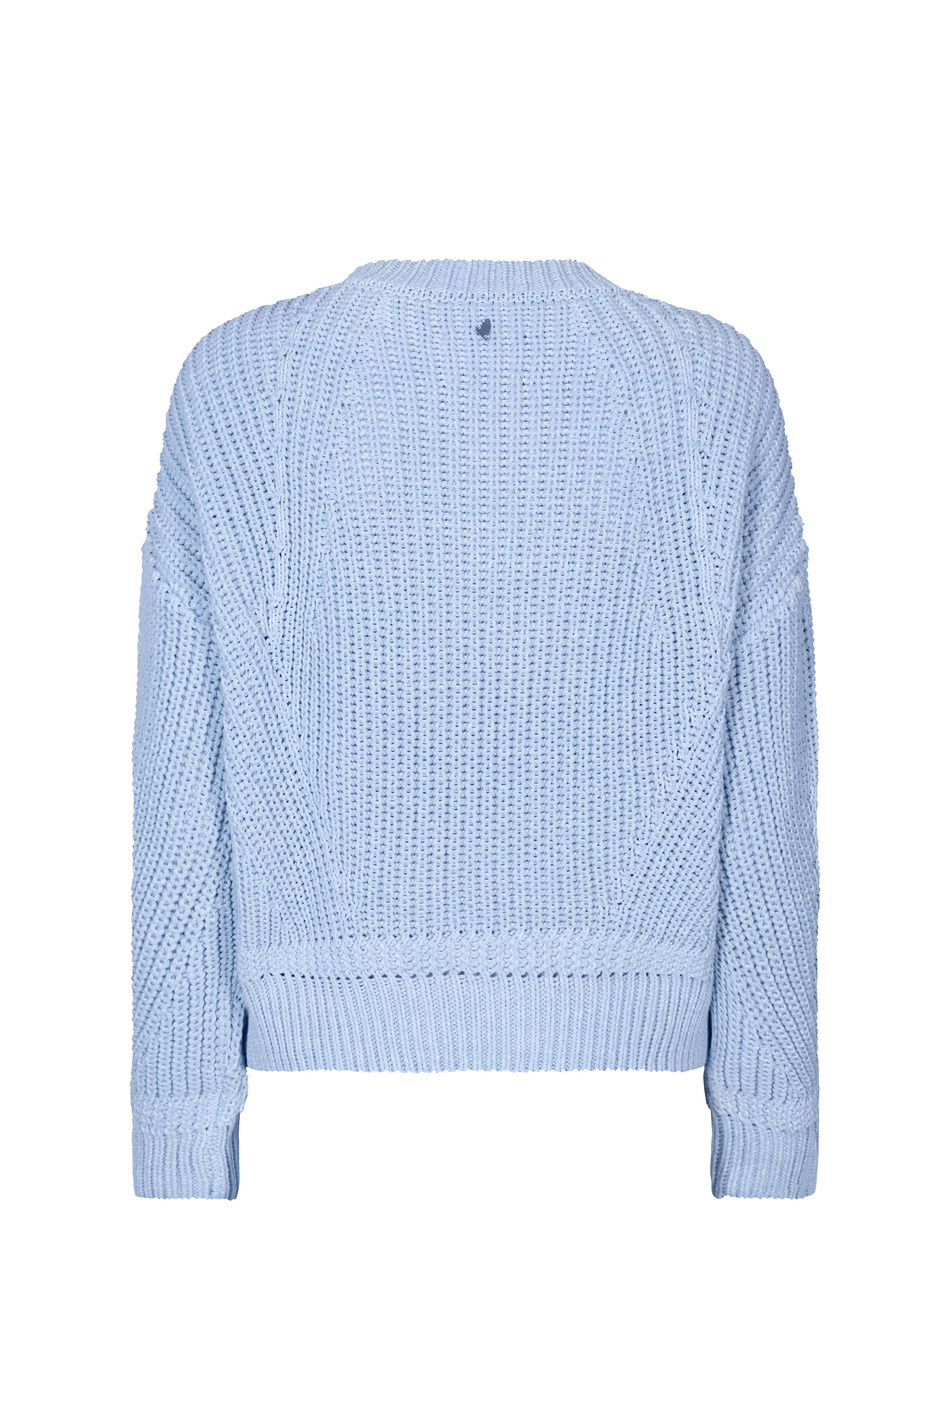 Mos Mosh Lizza Knit - Blue